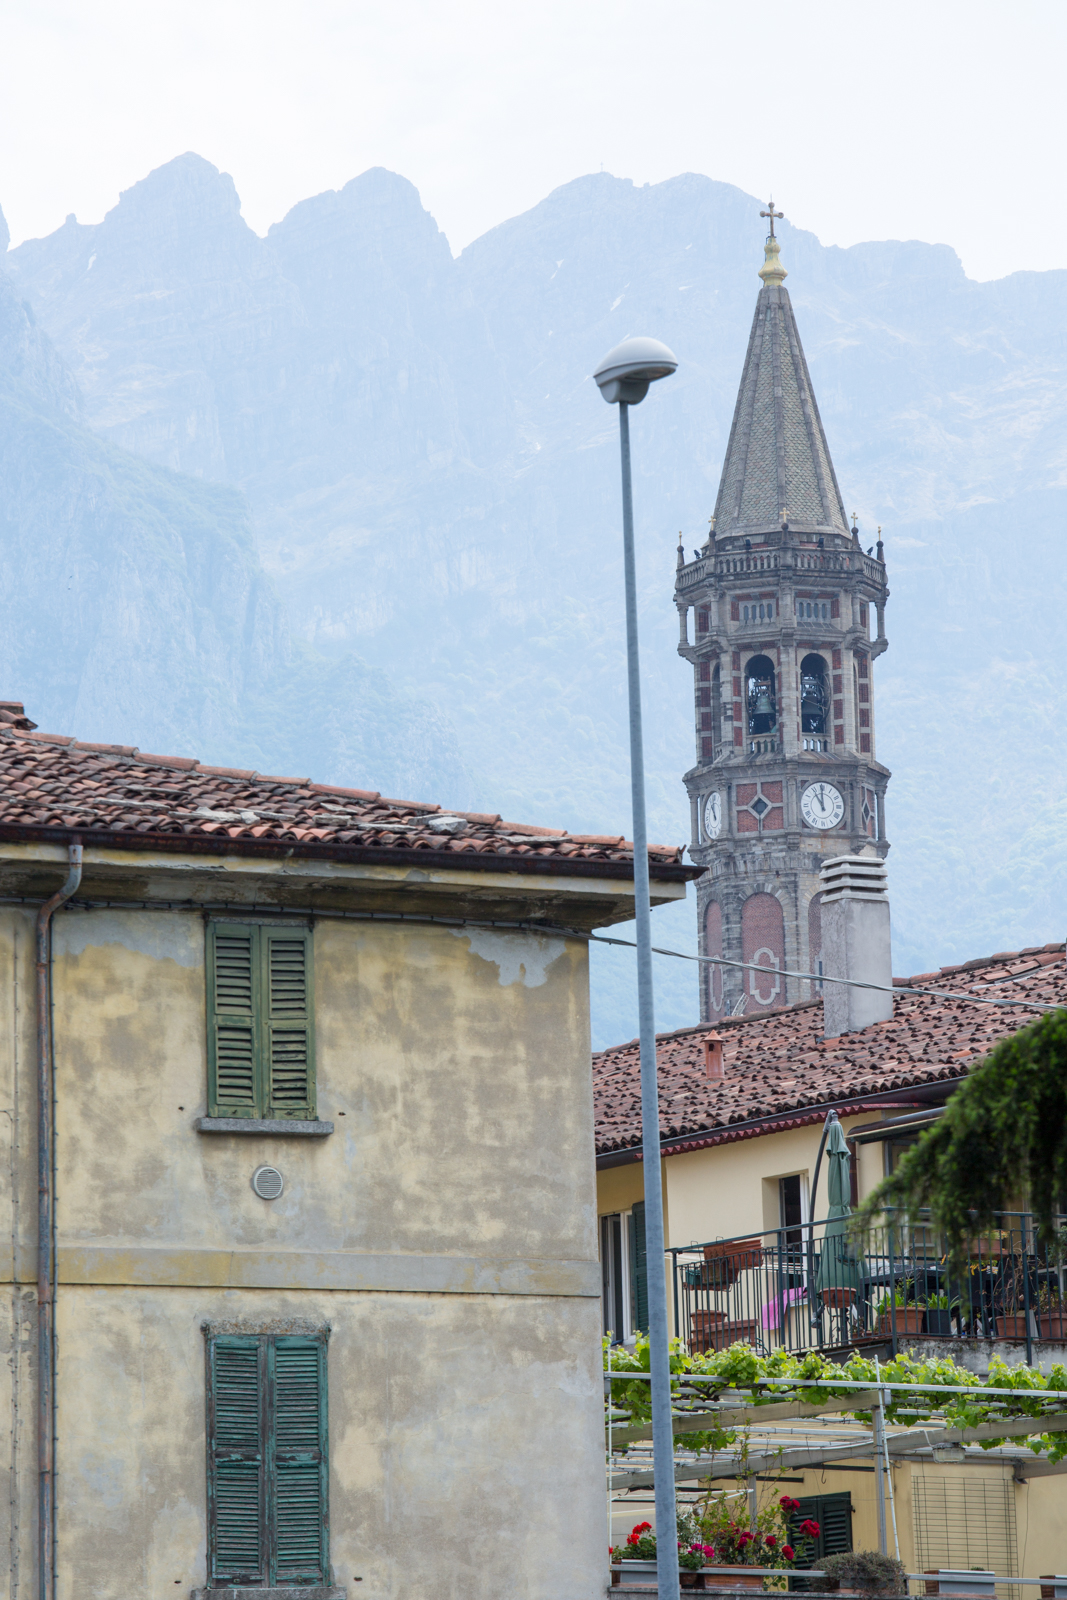 Lecco's Bell Tower and Monte Resegone